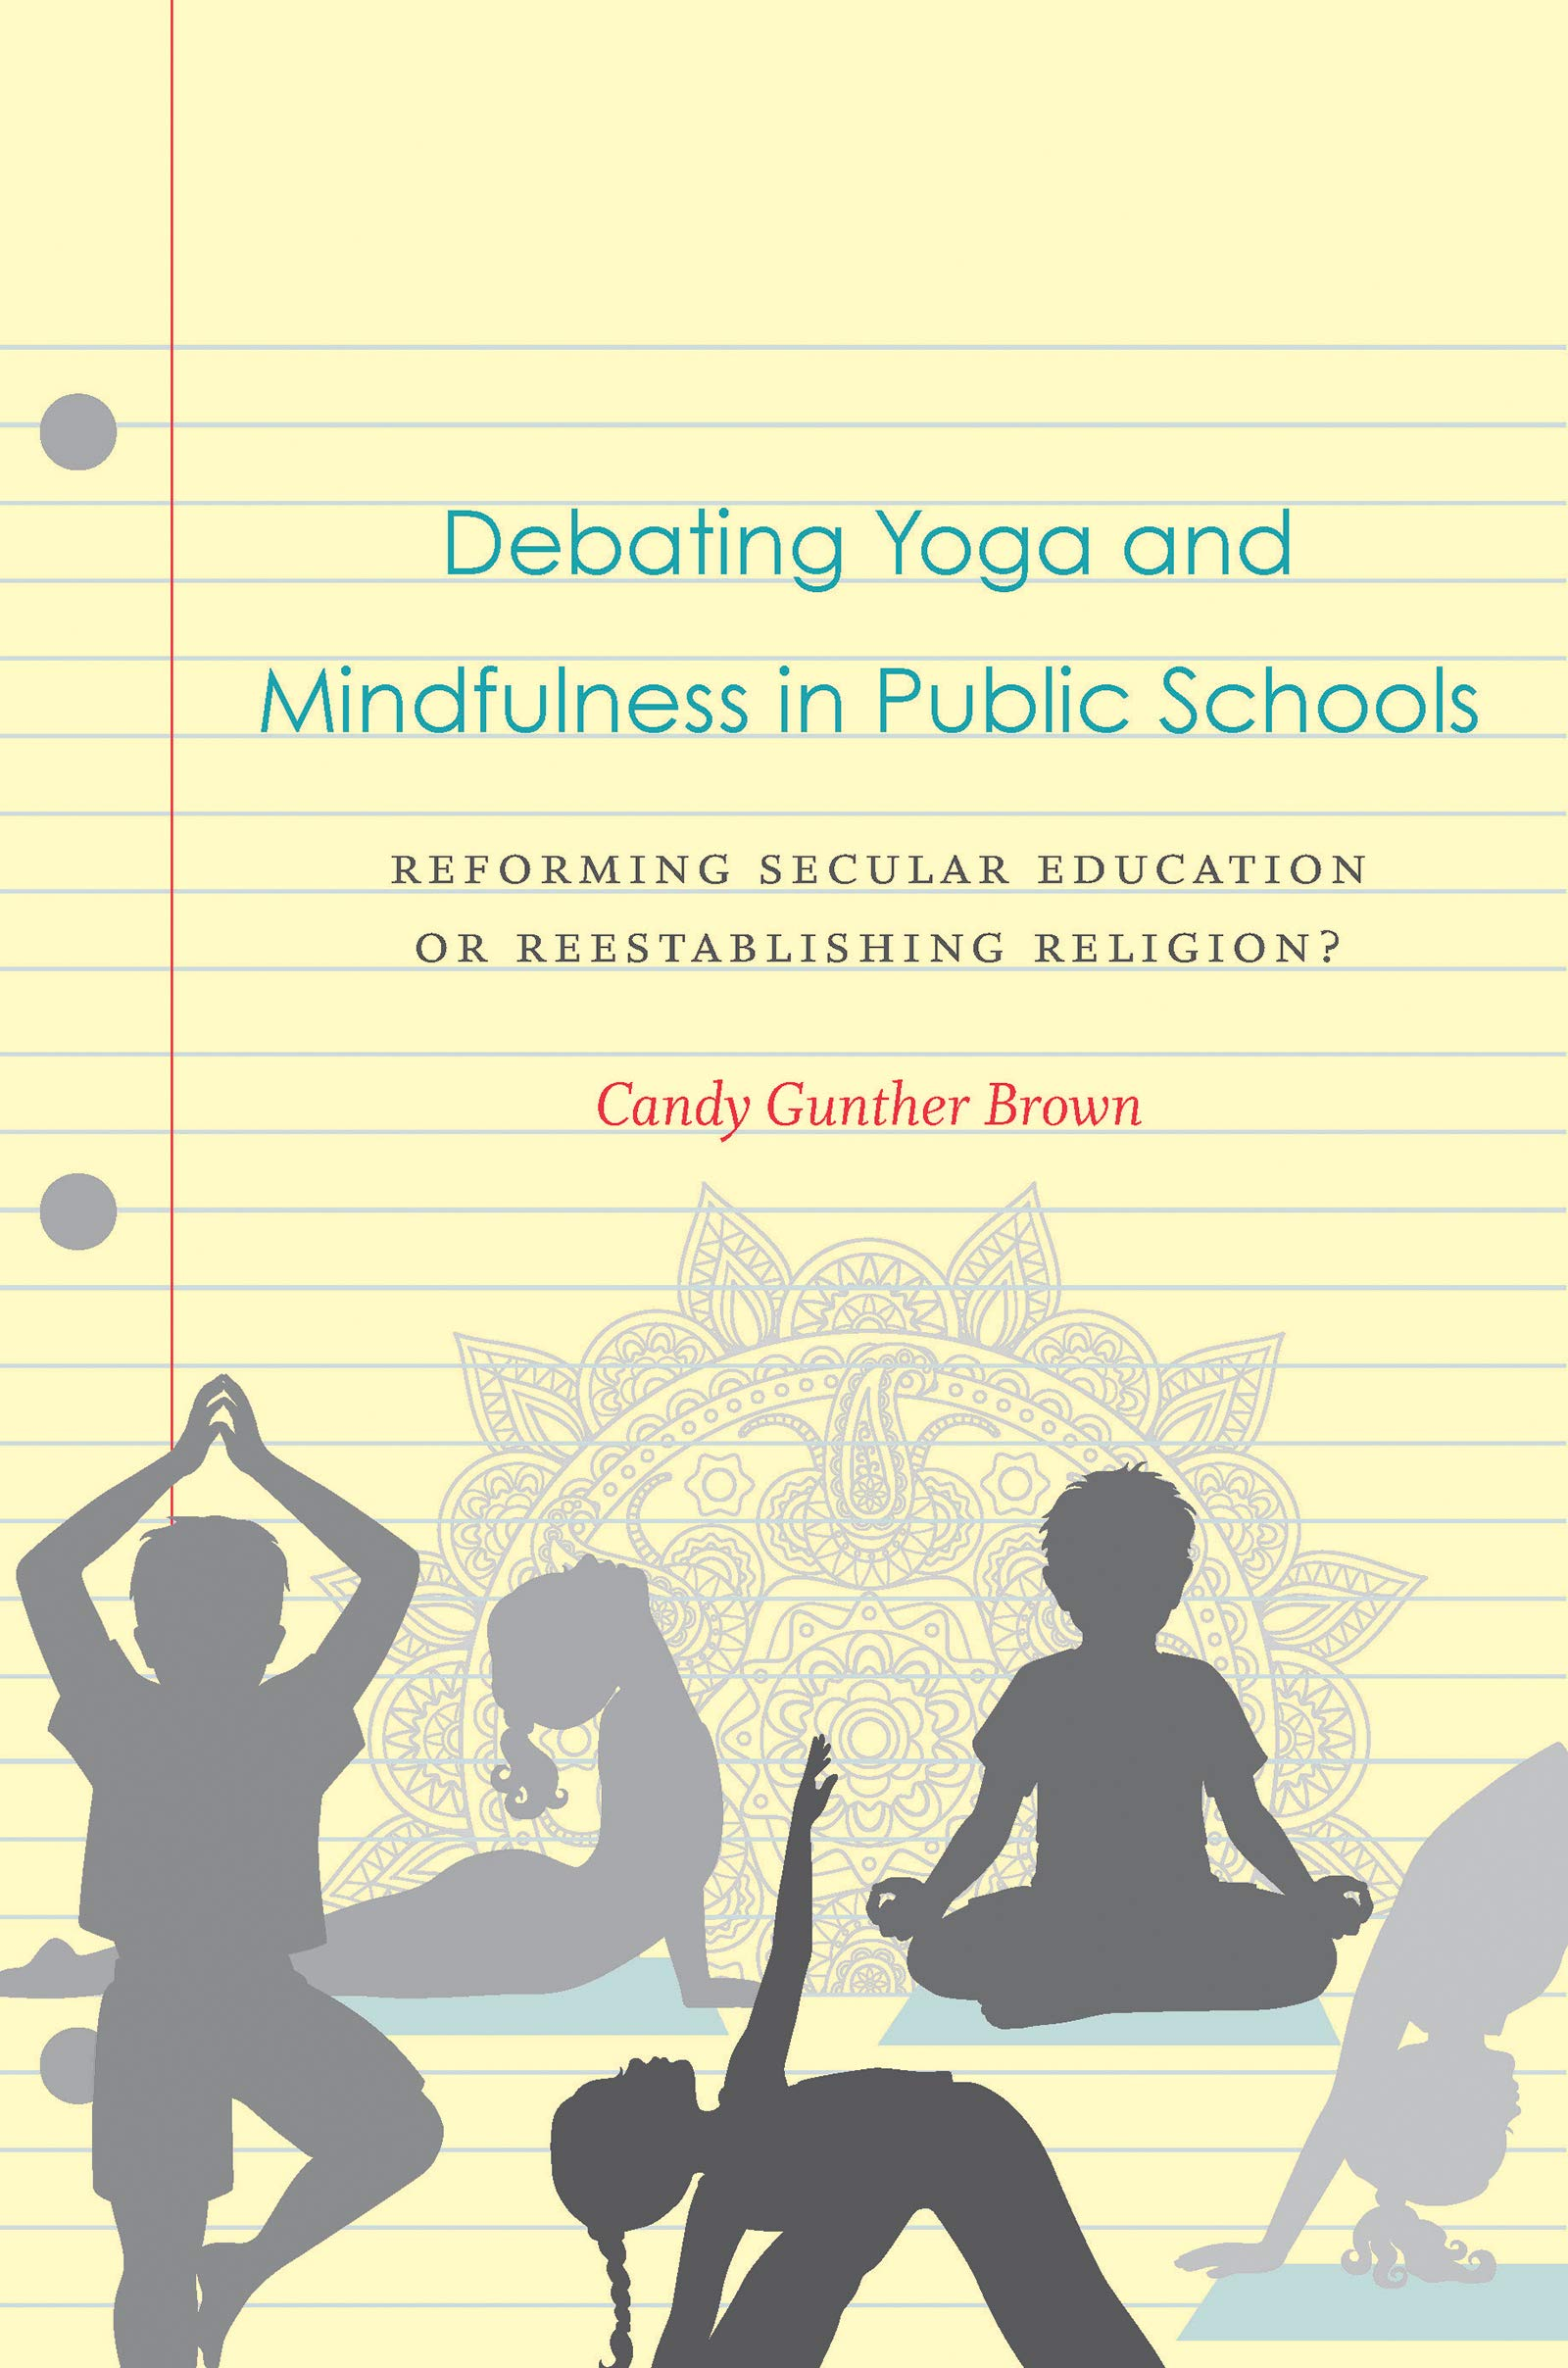 Amazon Com Debating Yoga And Mindfulness In Public Schools Reforming Secular Education Or Reestablishing Religion Ebook Brown Candy Gunther Kindle Store